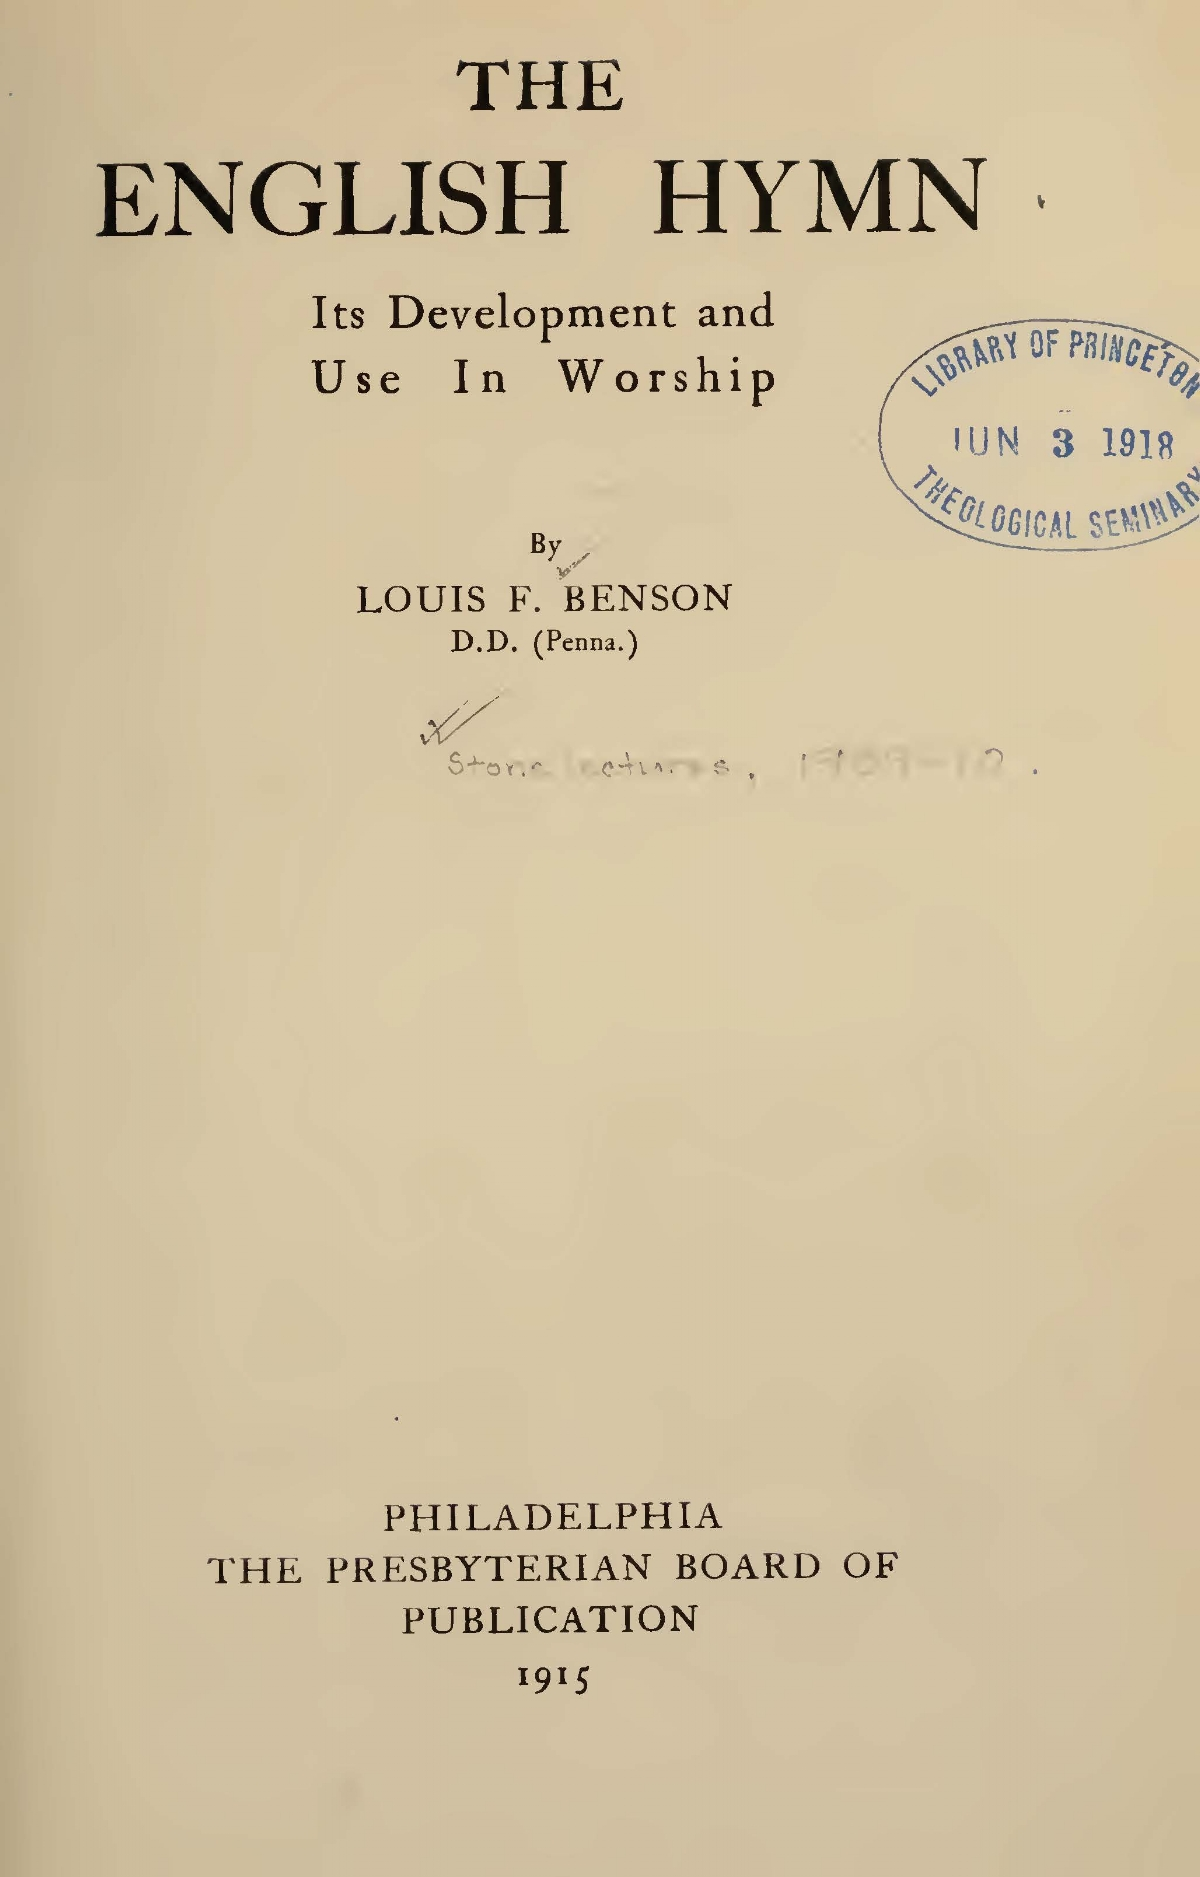 Benson, Louis FitzGerald, The English Hym Its Development and Use in Worship Title Page.jpg